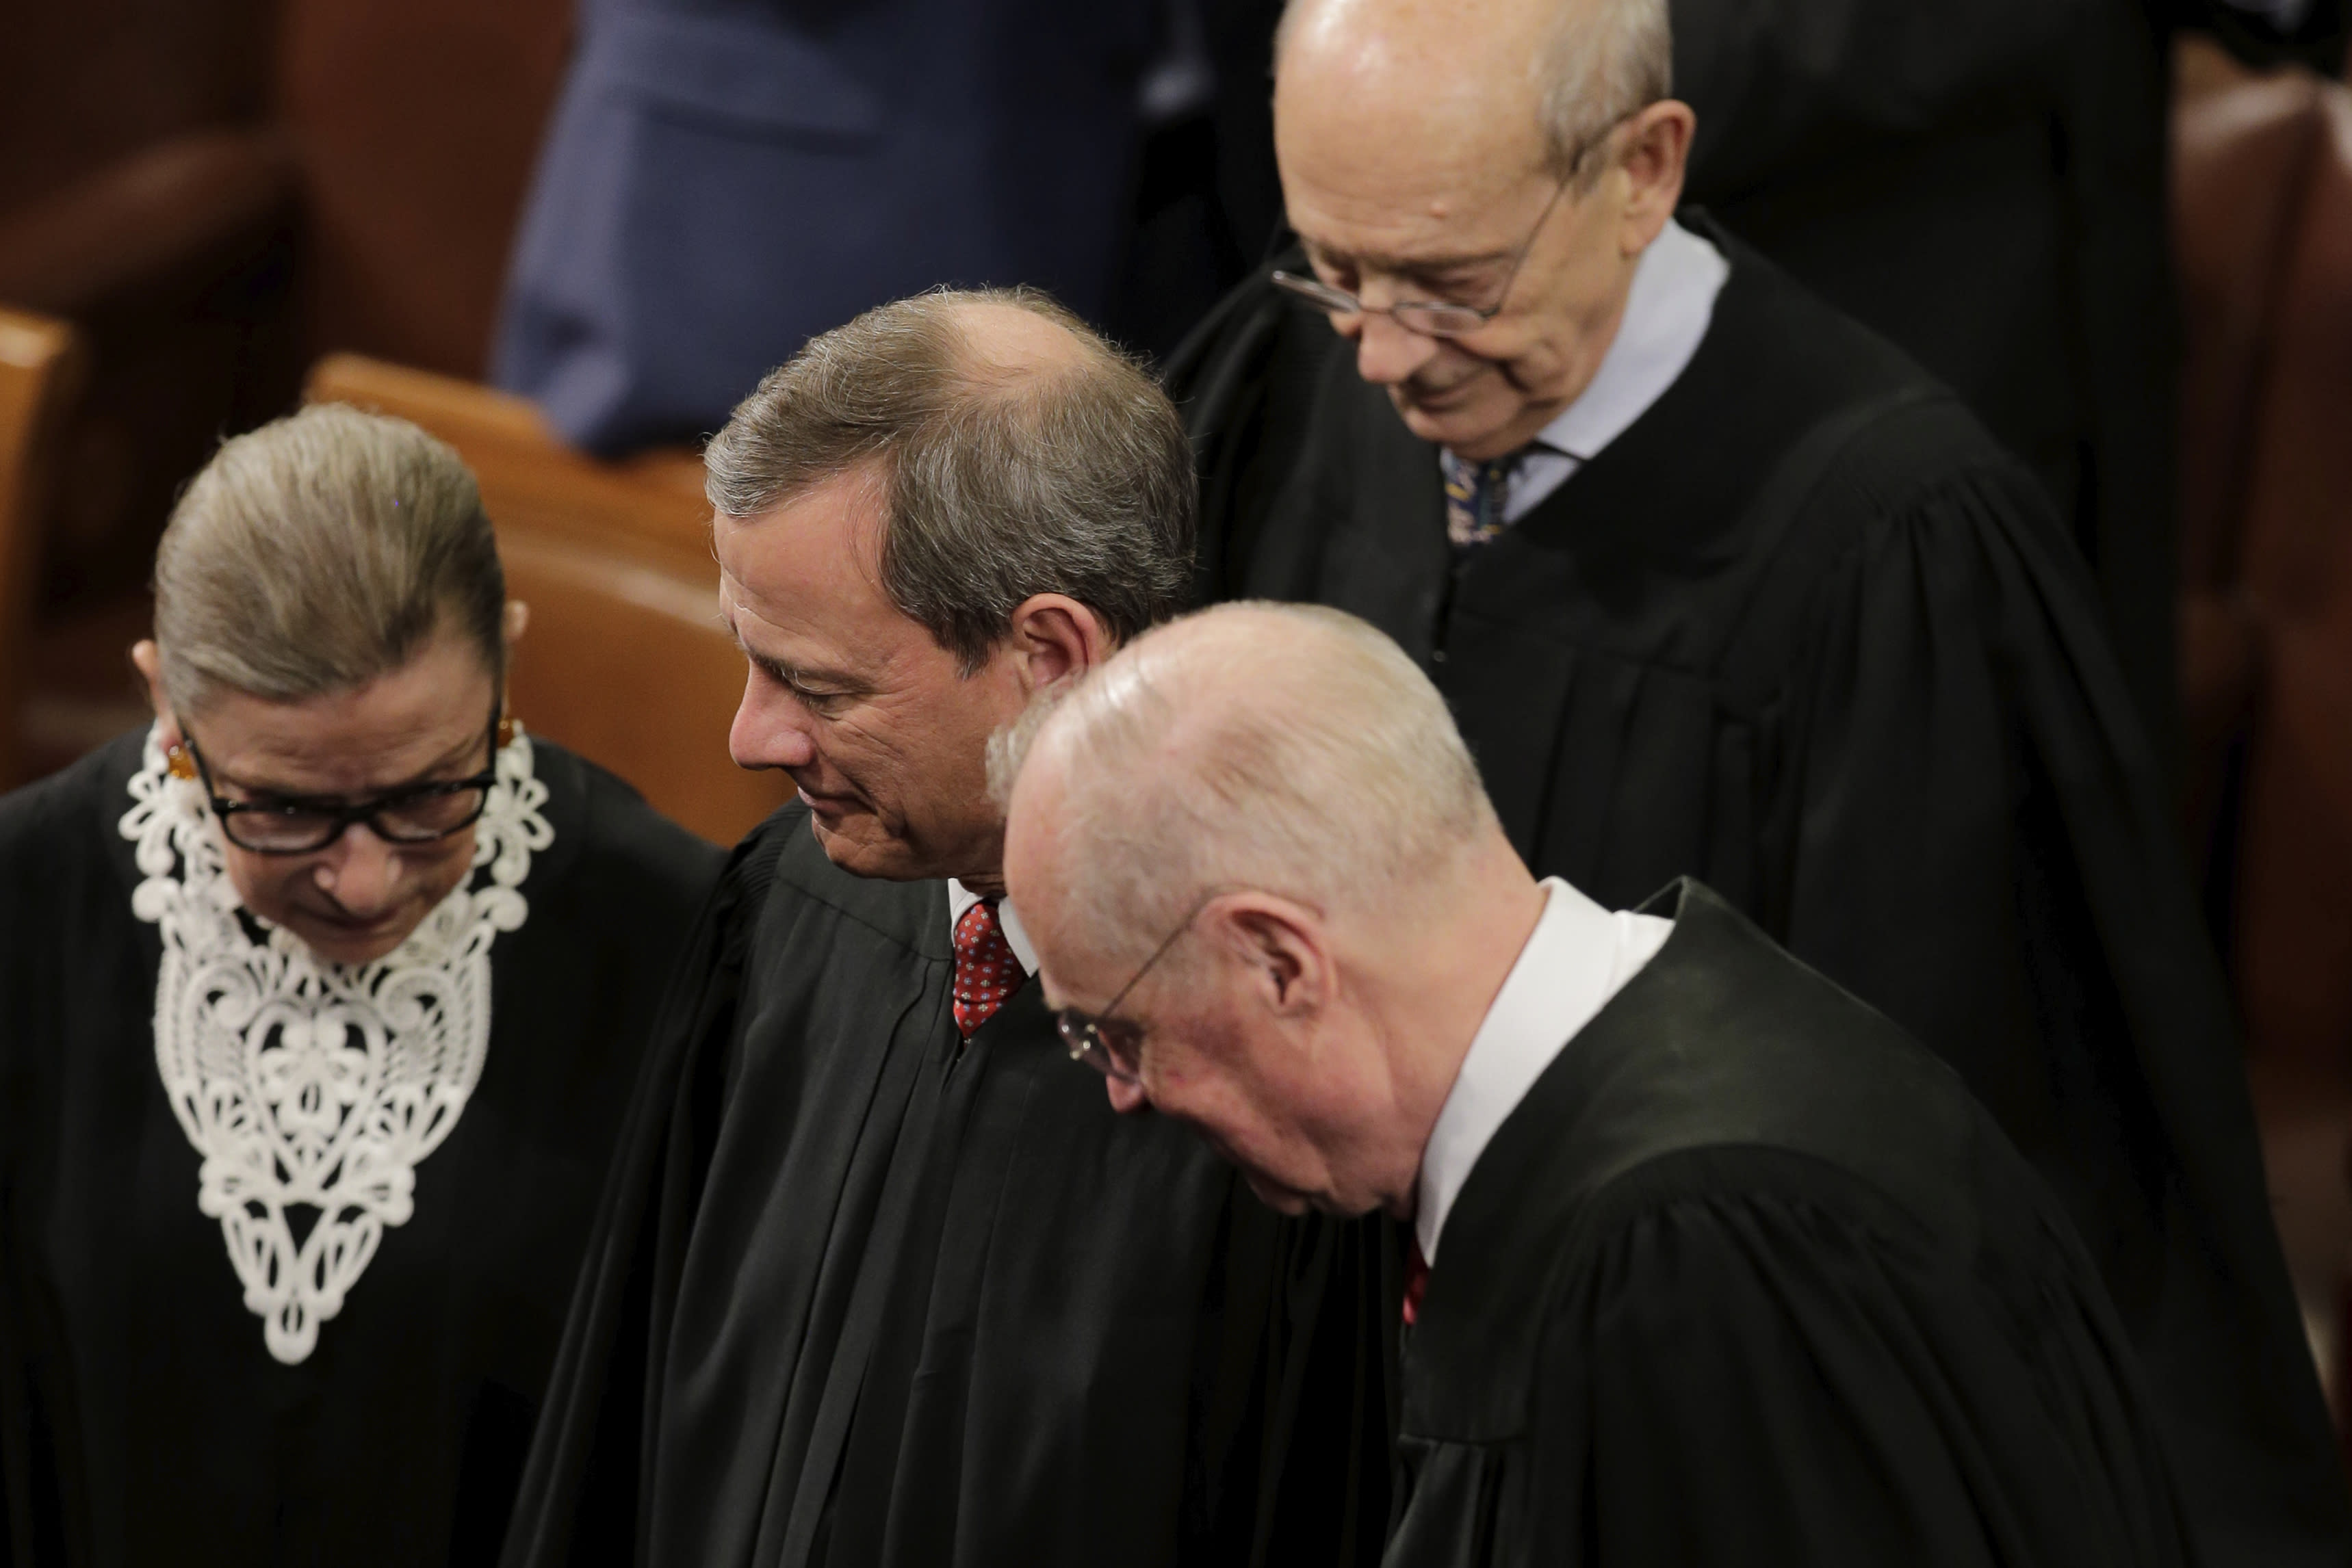 FILE - In this Jan. 12, 2016, file photo, Supreme Court Justices, from left, Ruth Bader Ginsburg, Chief Justice John Roberts, Anthony Kennedy and Stephen Breyer arrive on Capitol Hill in Washington, for President Barack Obama's State of the Union address before a joint session of Congress. Ginsburg didn't put on her judge's robe without also fastening something around her neck. Ginsburg called her neckwear collars, or jabots, and they became part of her signature style, along with her glasses, lace gloves and fabric hair ties known as scrunchies. (AP Photo/J. Scott Applewhite, File)